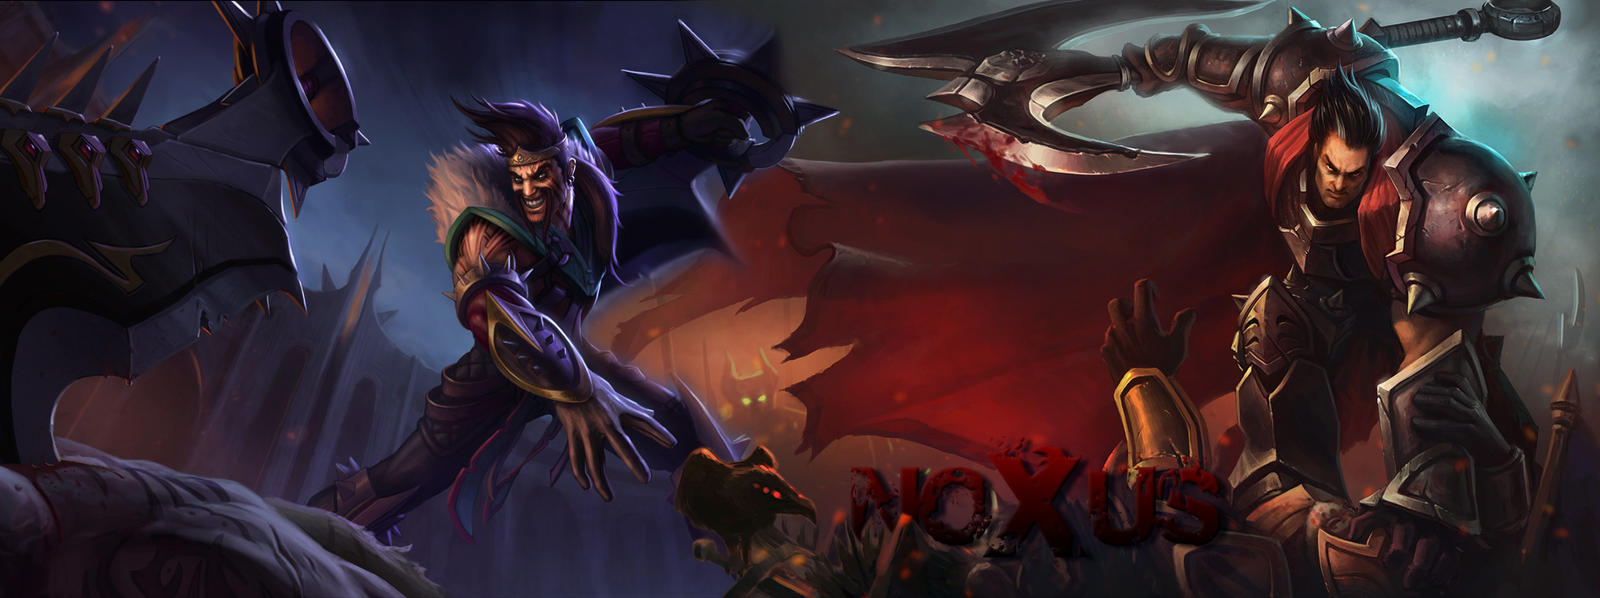 Draven Darius The Blood Brothers by NUkeScLeague Of Legends Wallpaper Darius Draven